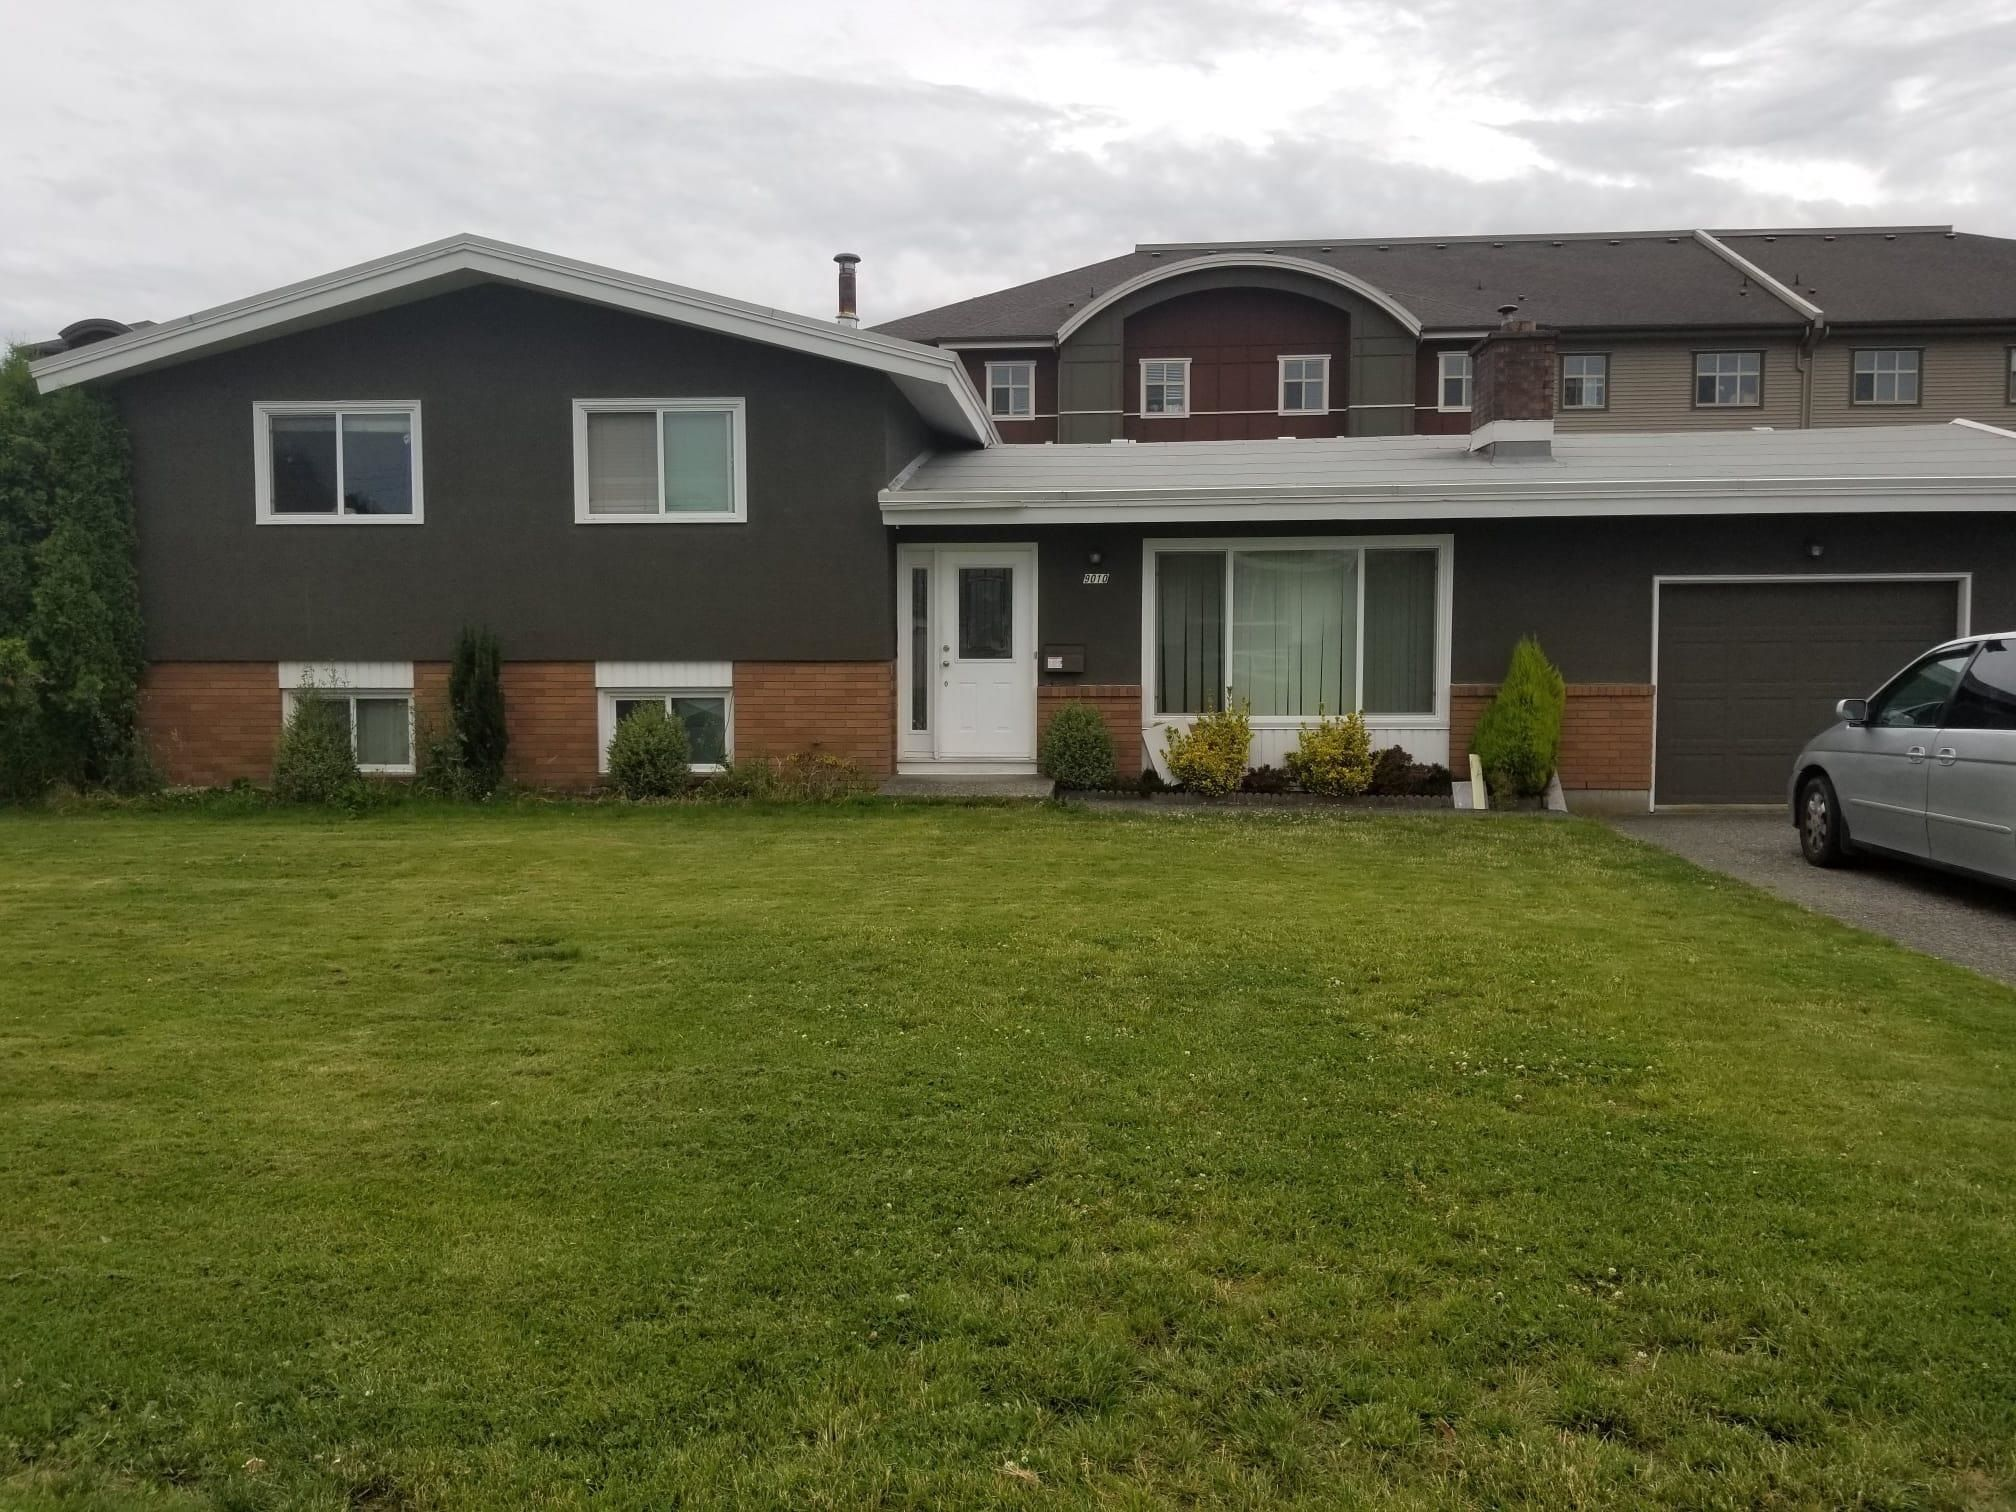 Main Photo: 9010 SUNSET Drive in Chilliwack: Chilliwack W Young-Well House for sale : MLS®# R2611287